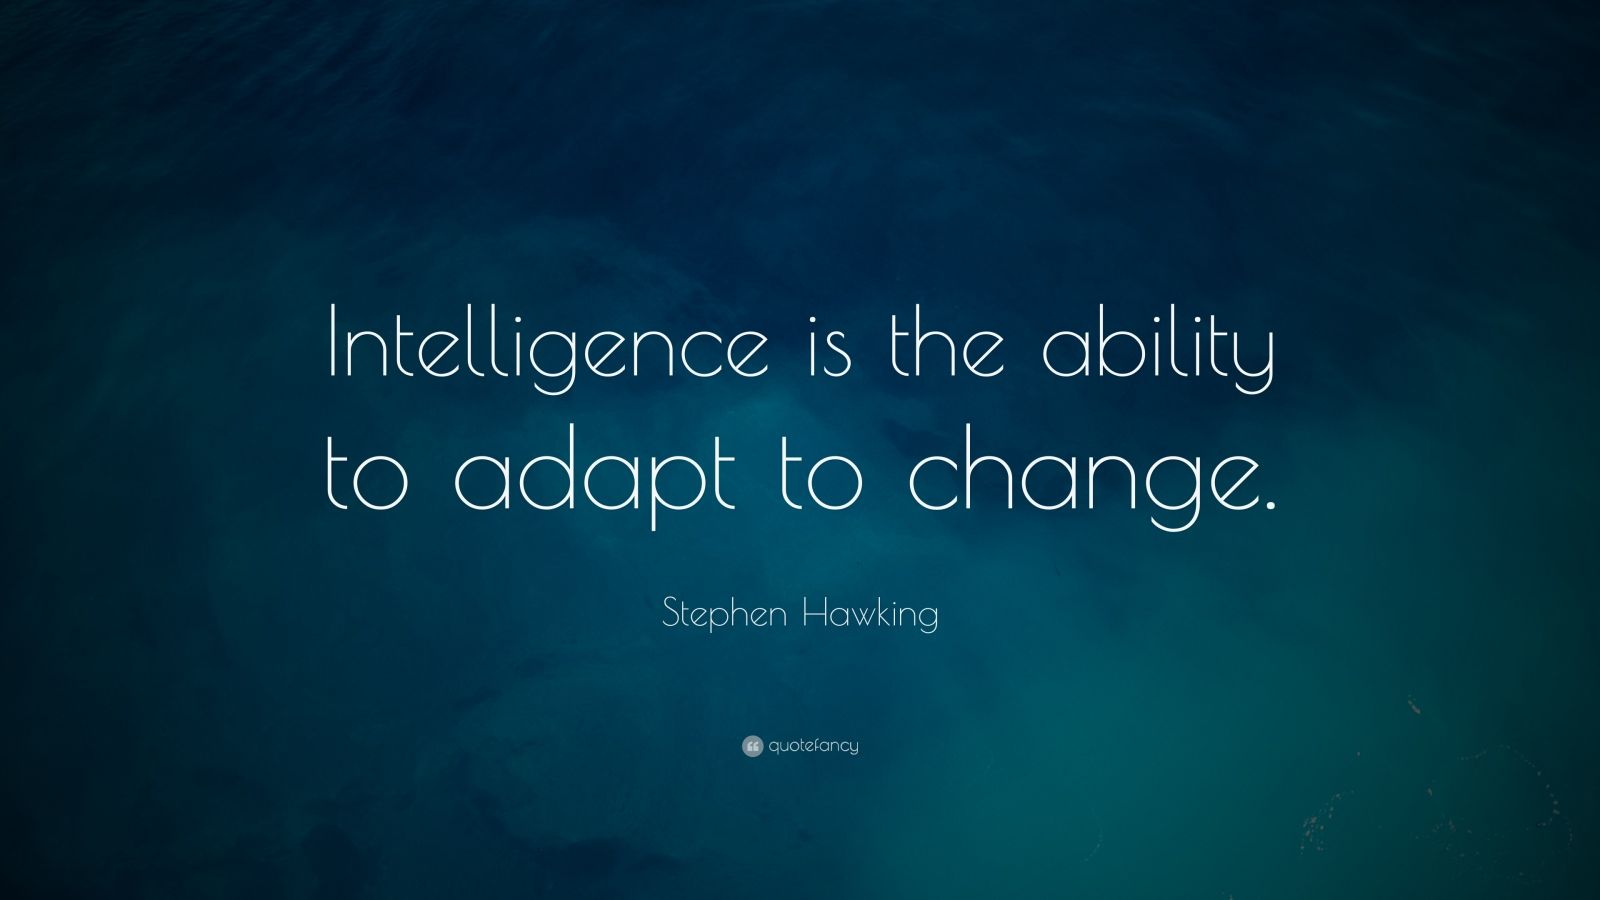 Stephen Hawking Quote: U201cIntelligence Is The Ability To Adapt To Change. U201d